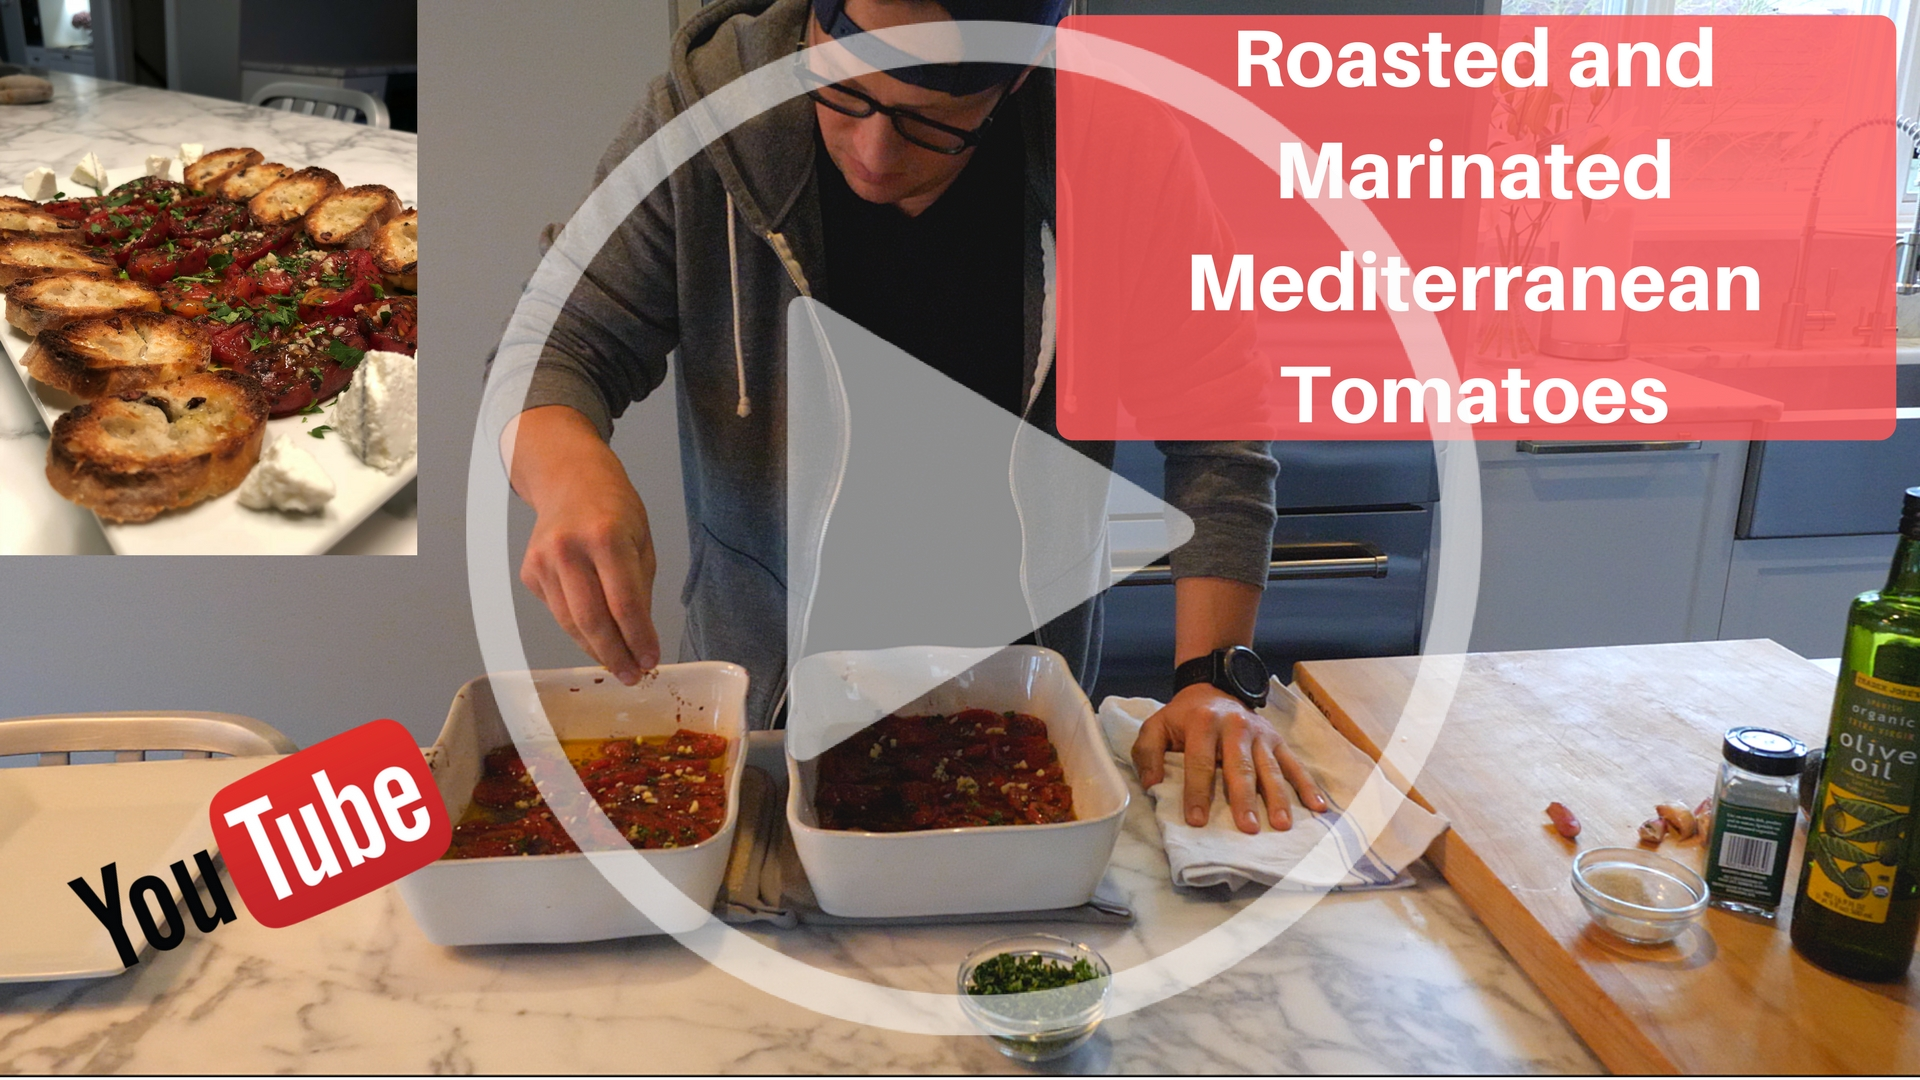 Roasted and Marinated Mediterranean Tomatoes